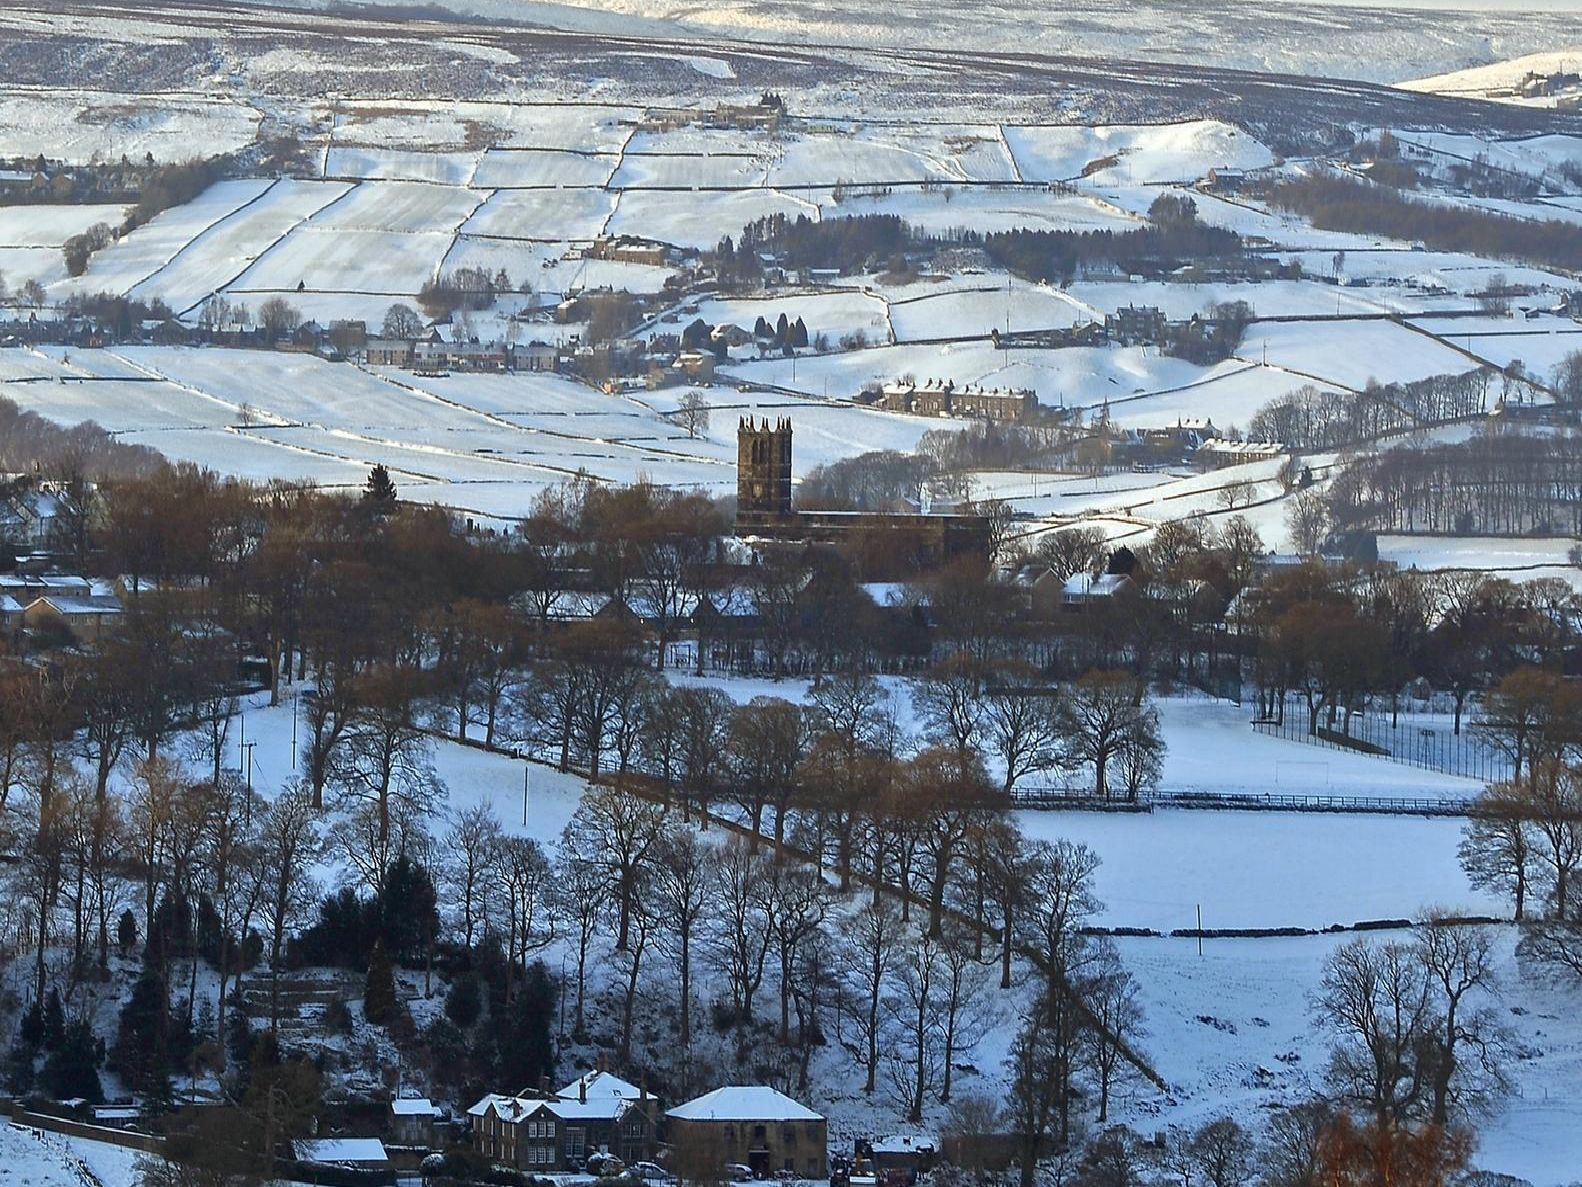 Snow scene in Calderdale